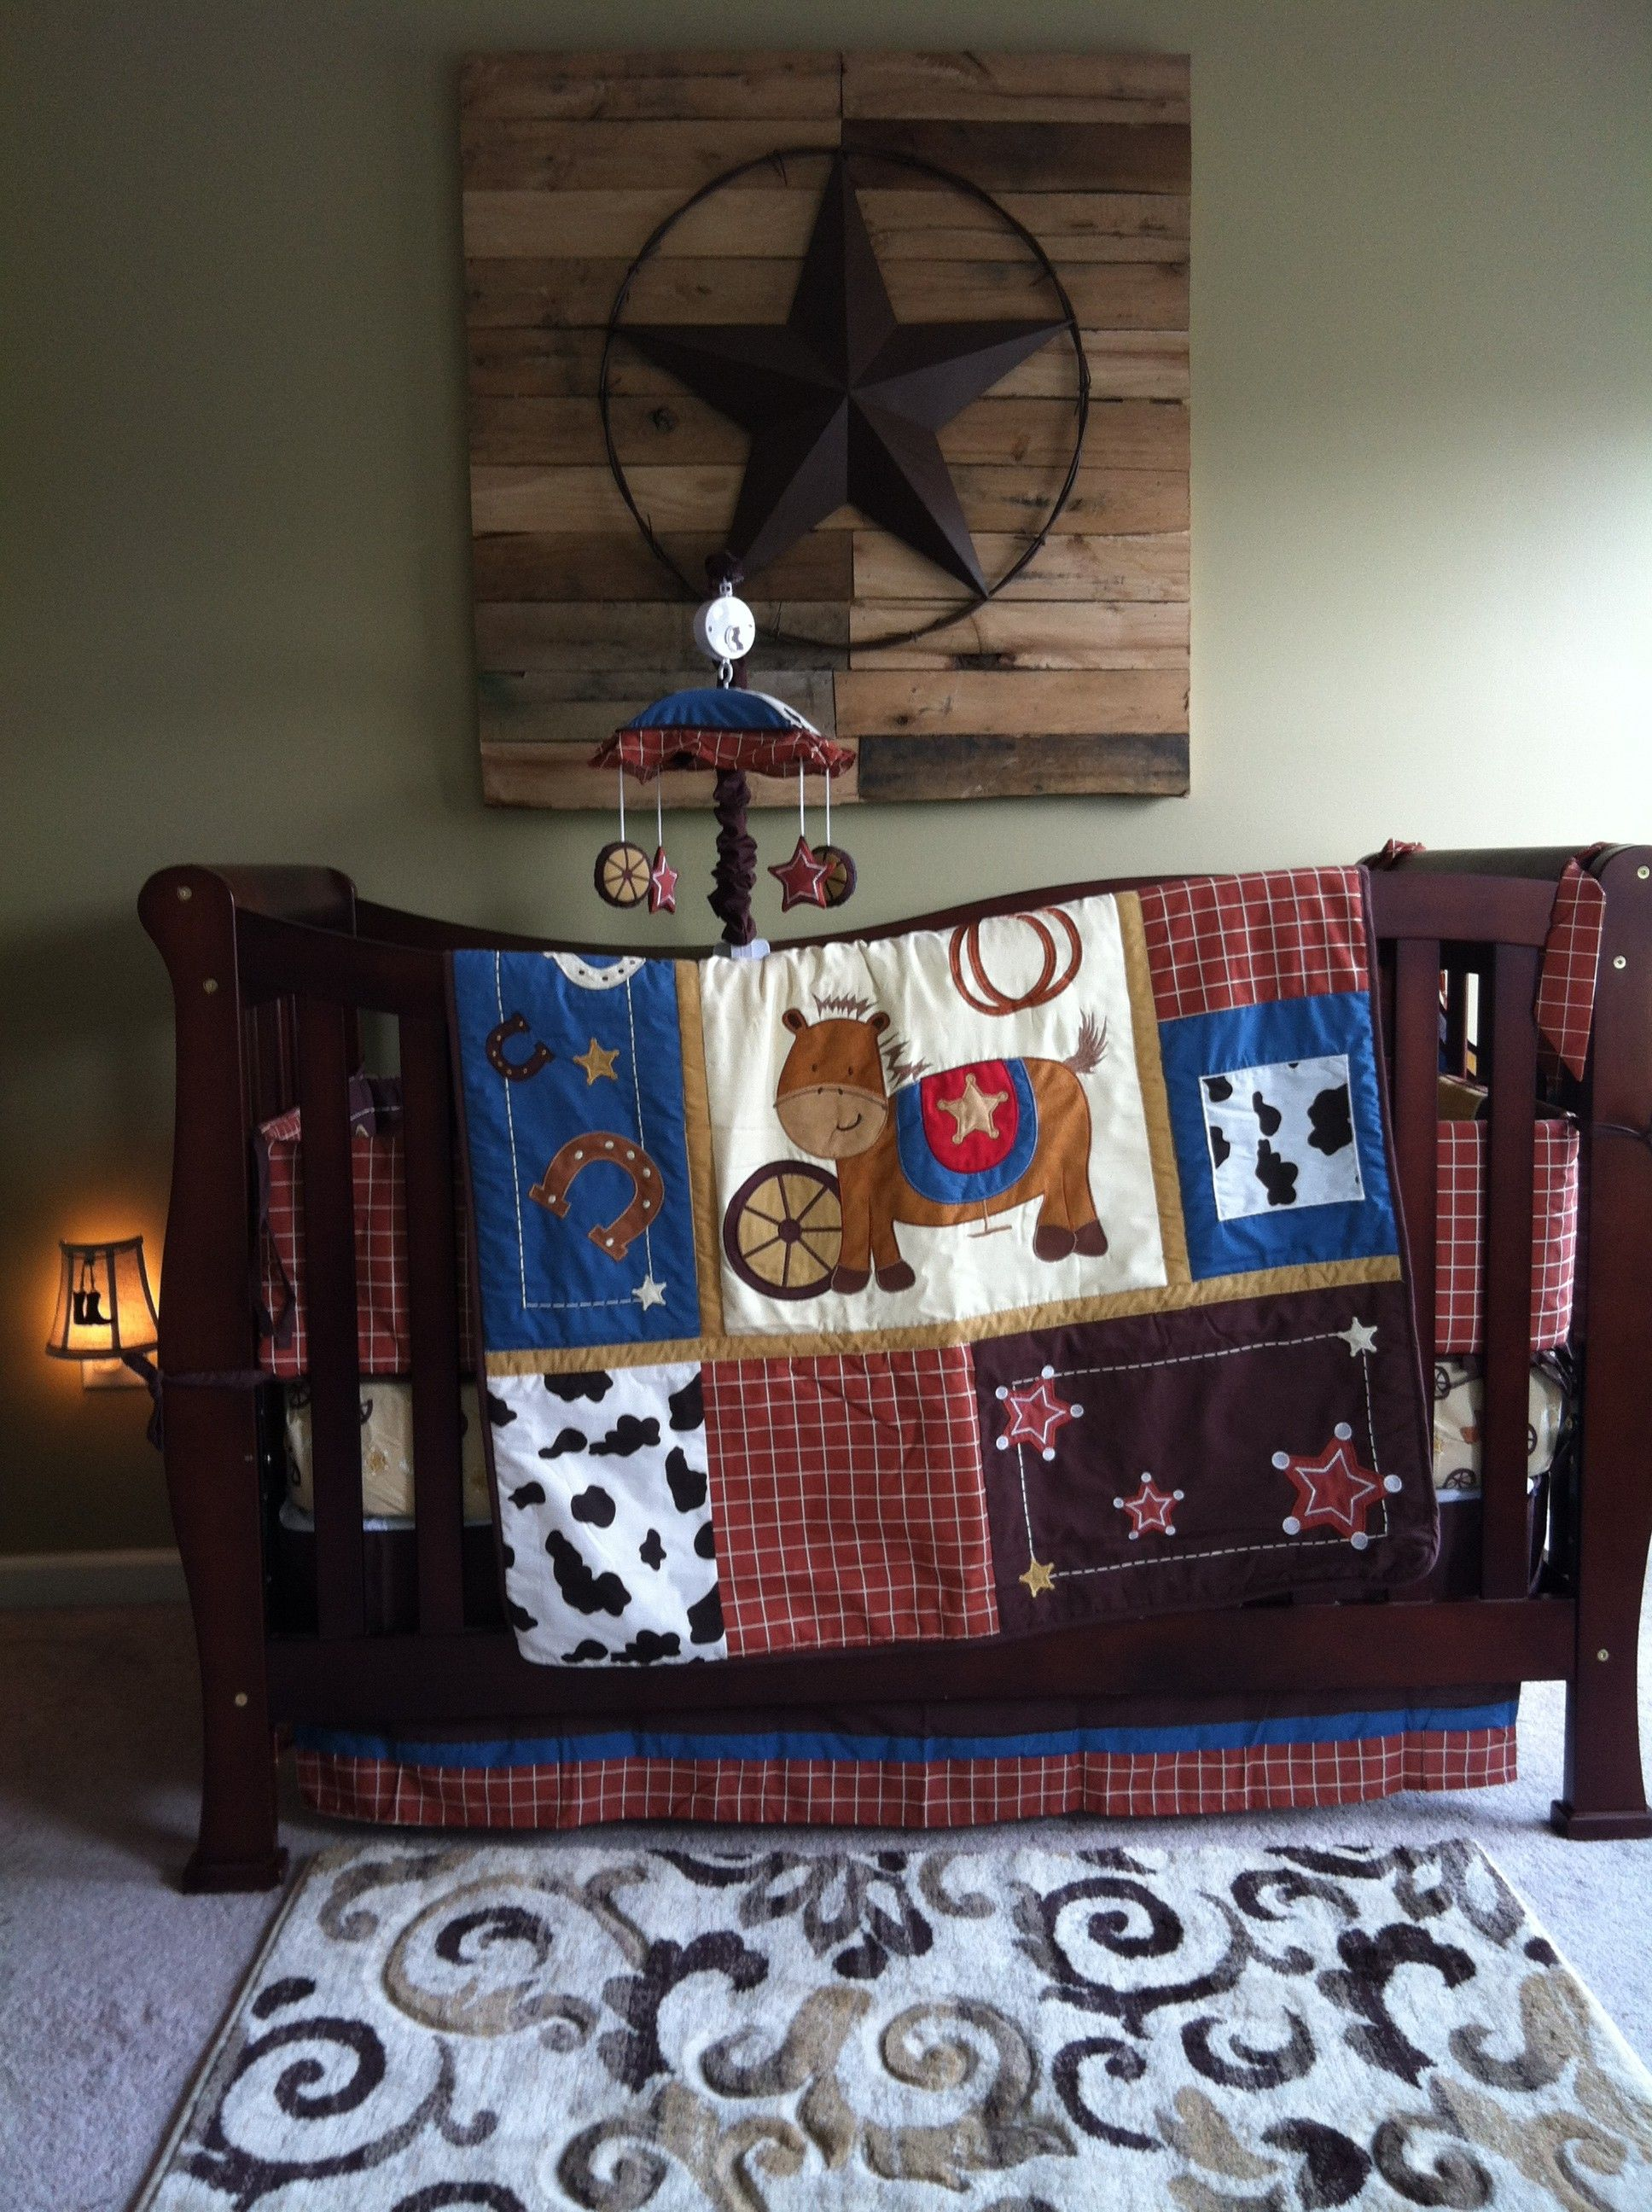 19 Best Images About Baby Room On Pinterest Western Homes Baby Rooms And Cowboy Theme